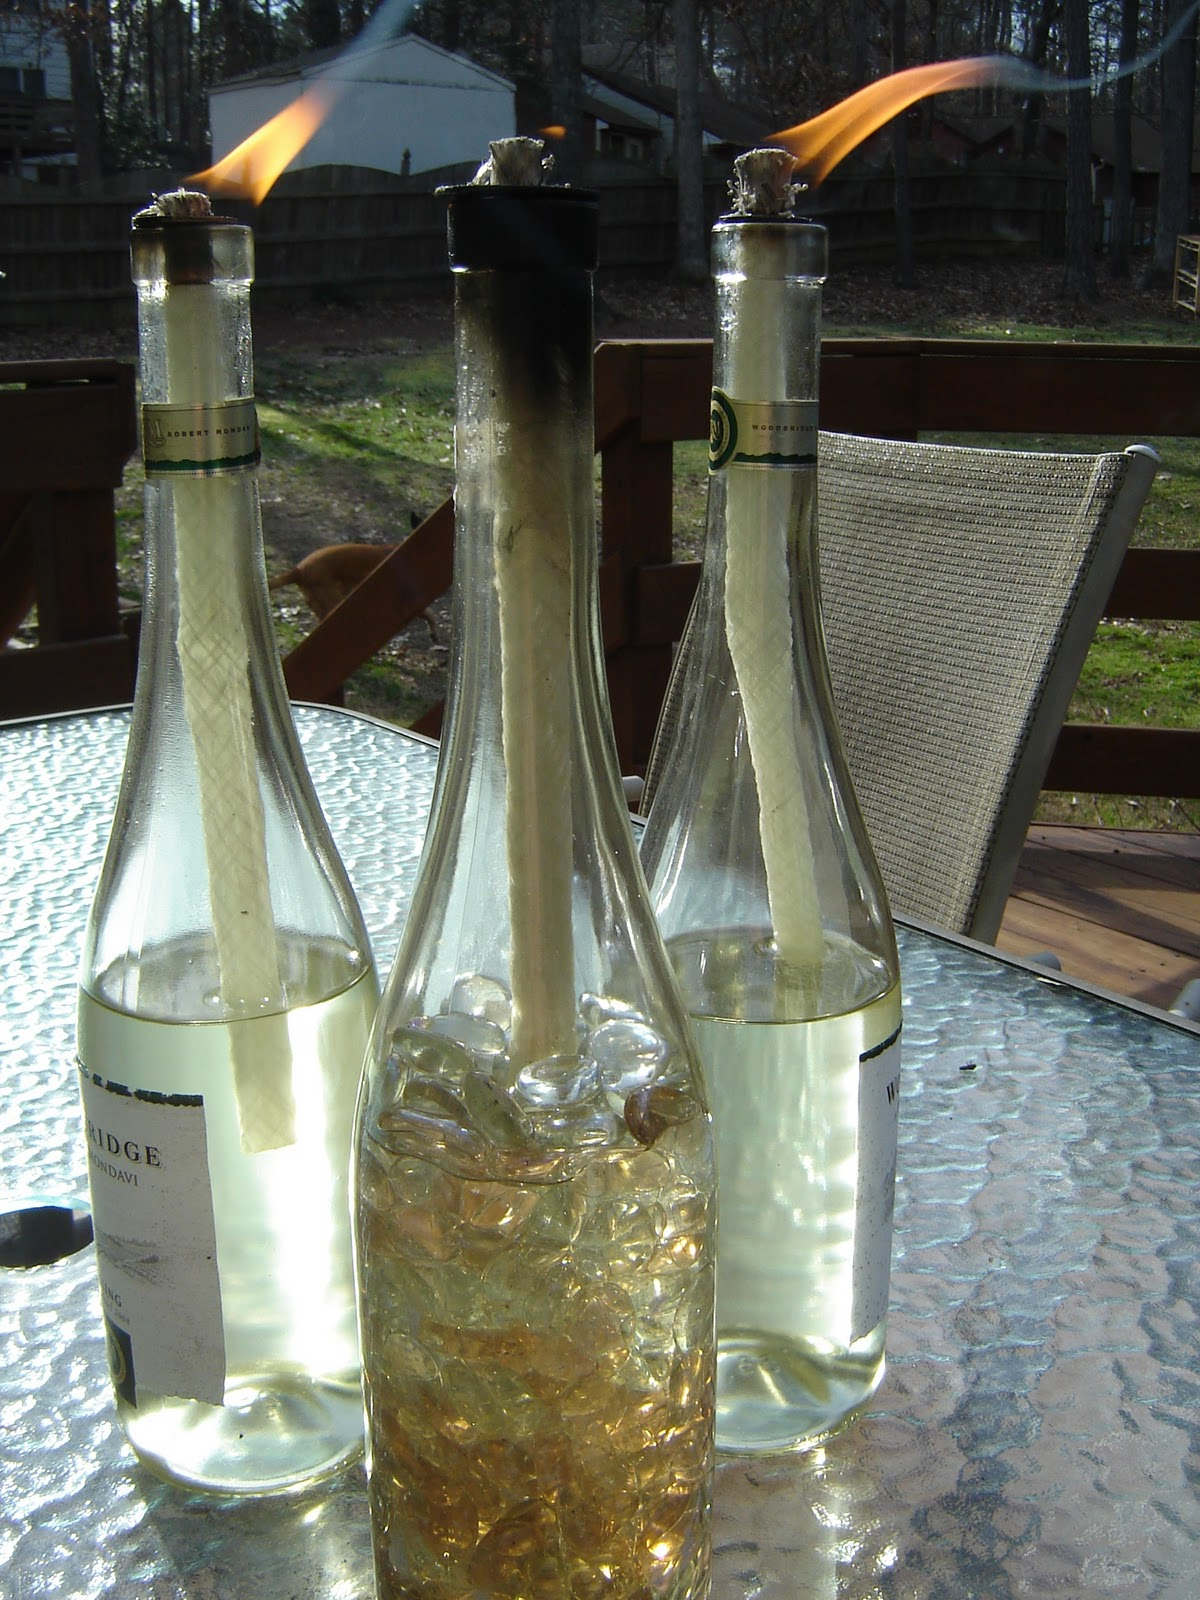 Tips tricks and ideas for home diy wine bottle tiki torches for How to preserve wine after opening bottle